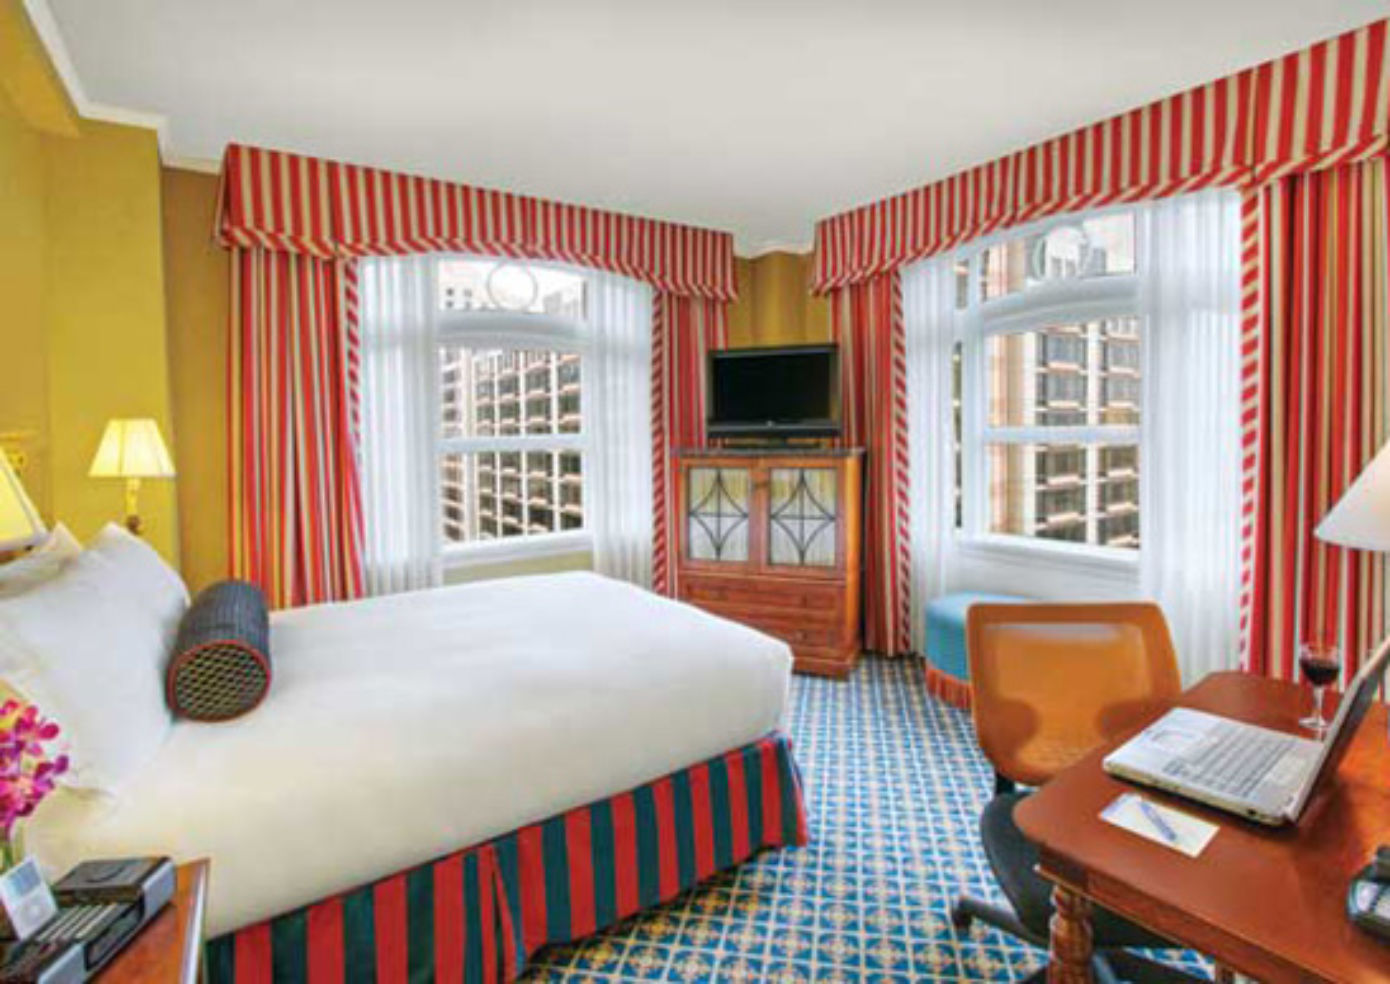 A room at Serrano Hotel in San Francisco